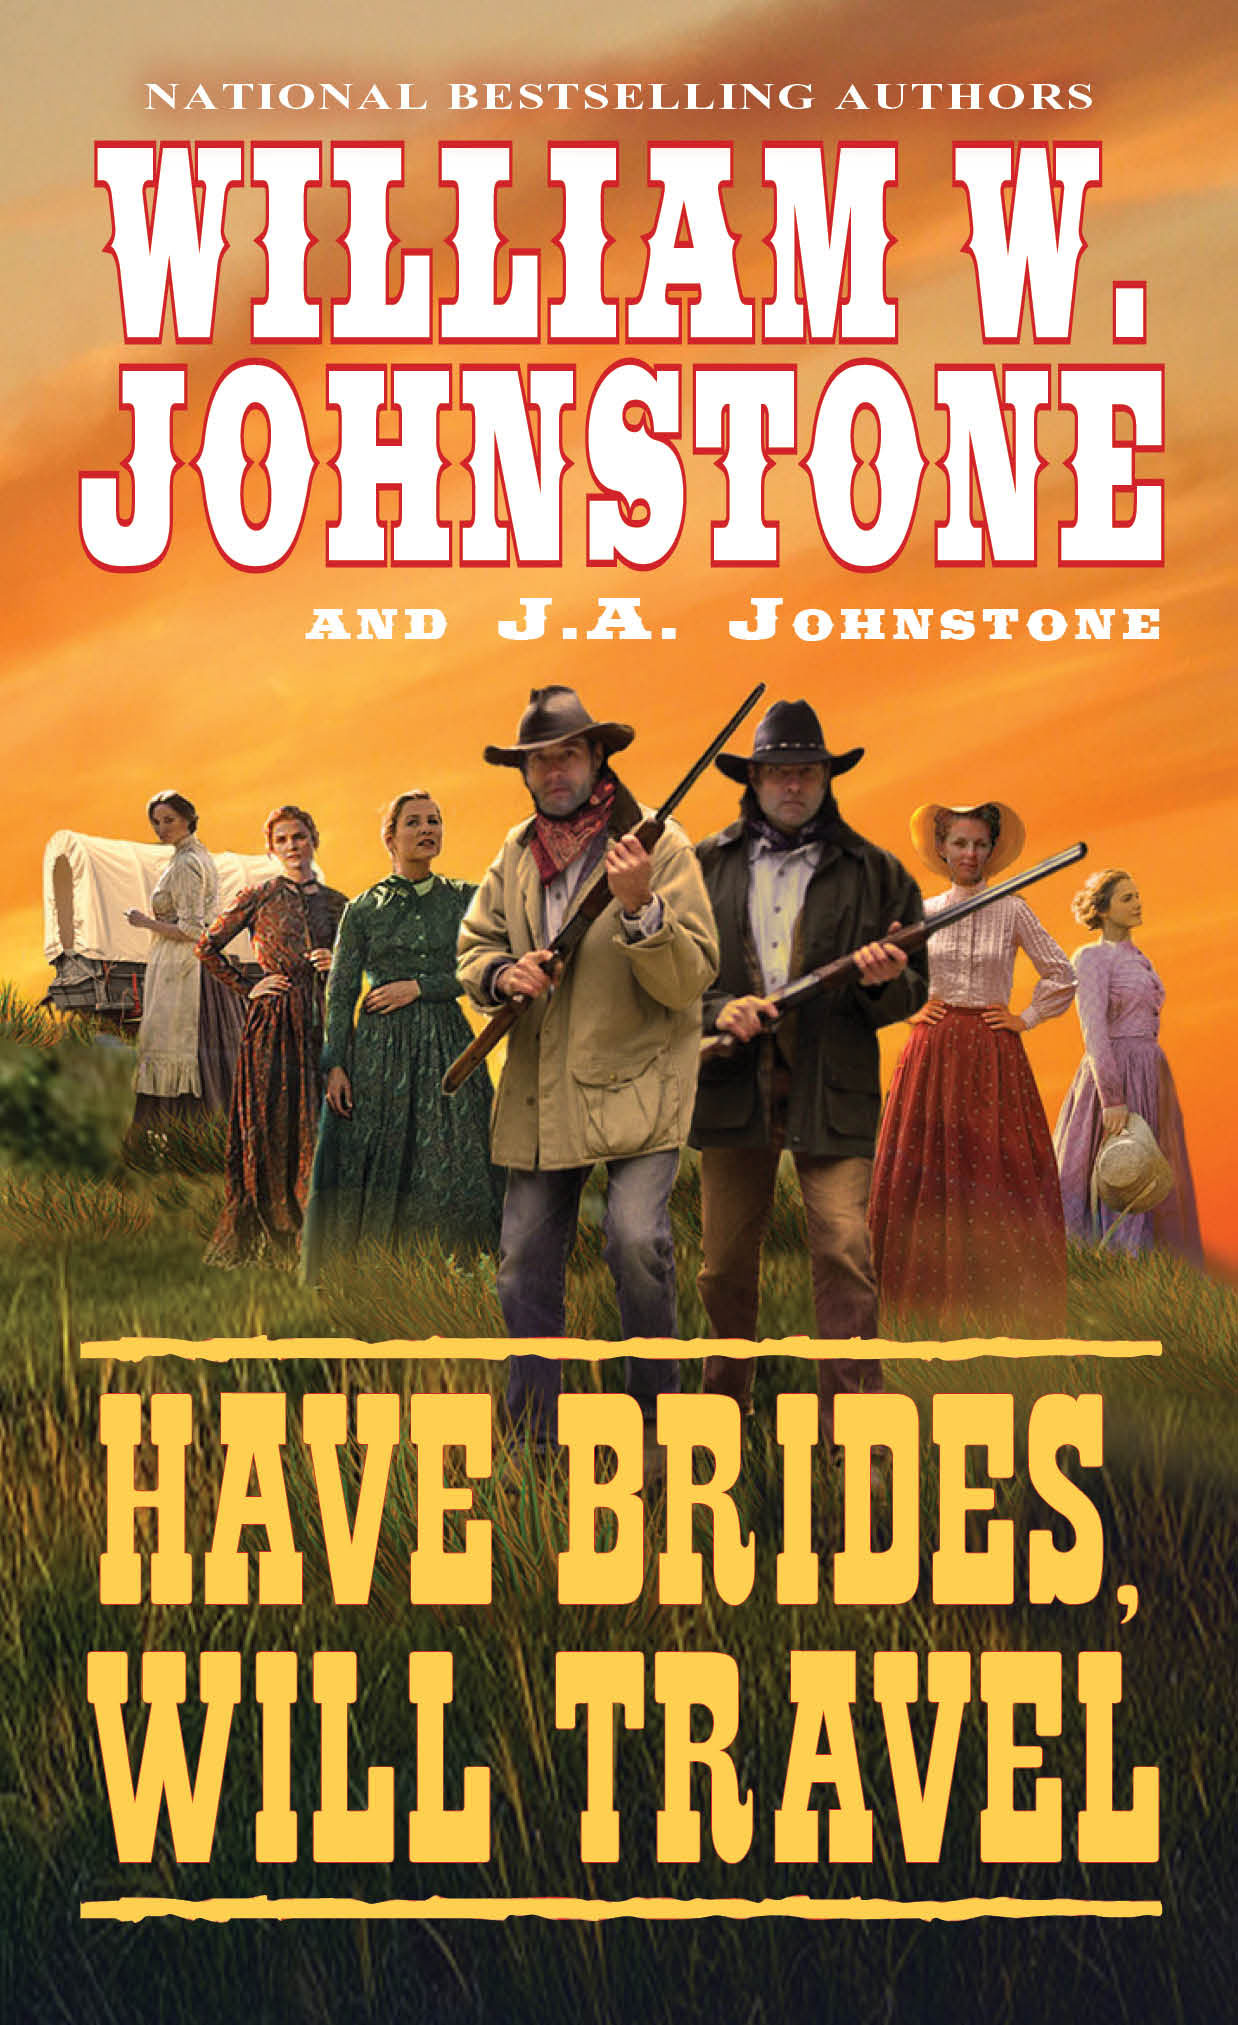 HAVE BRIDES, WILL TRAVEL by William W. Johnstone & J.A. Johnstone